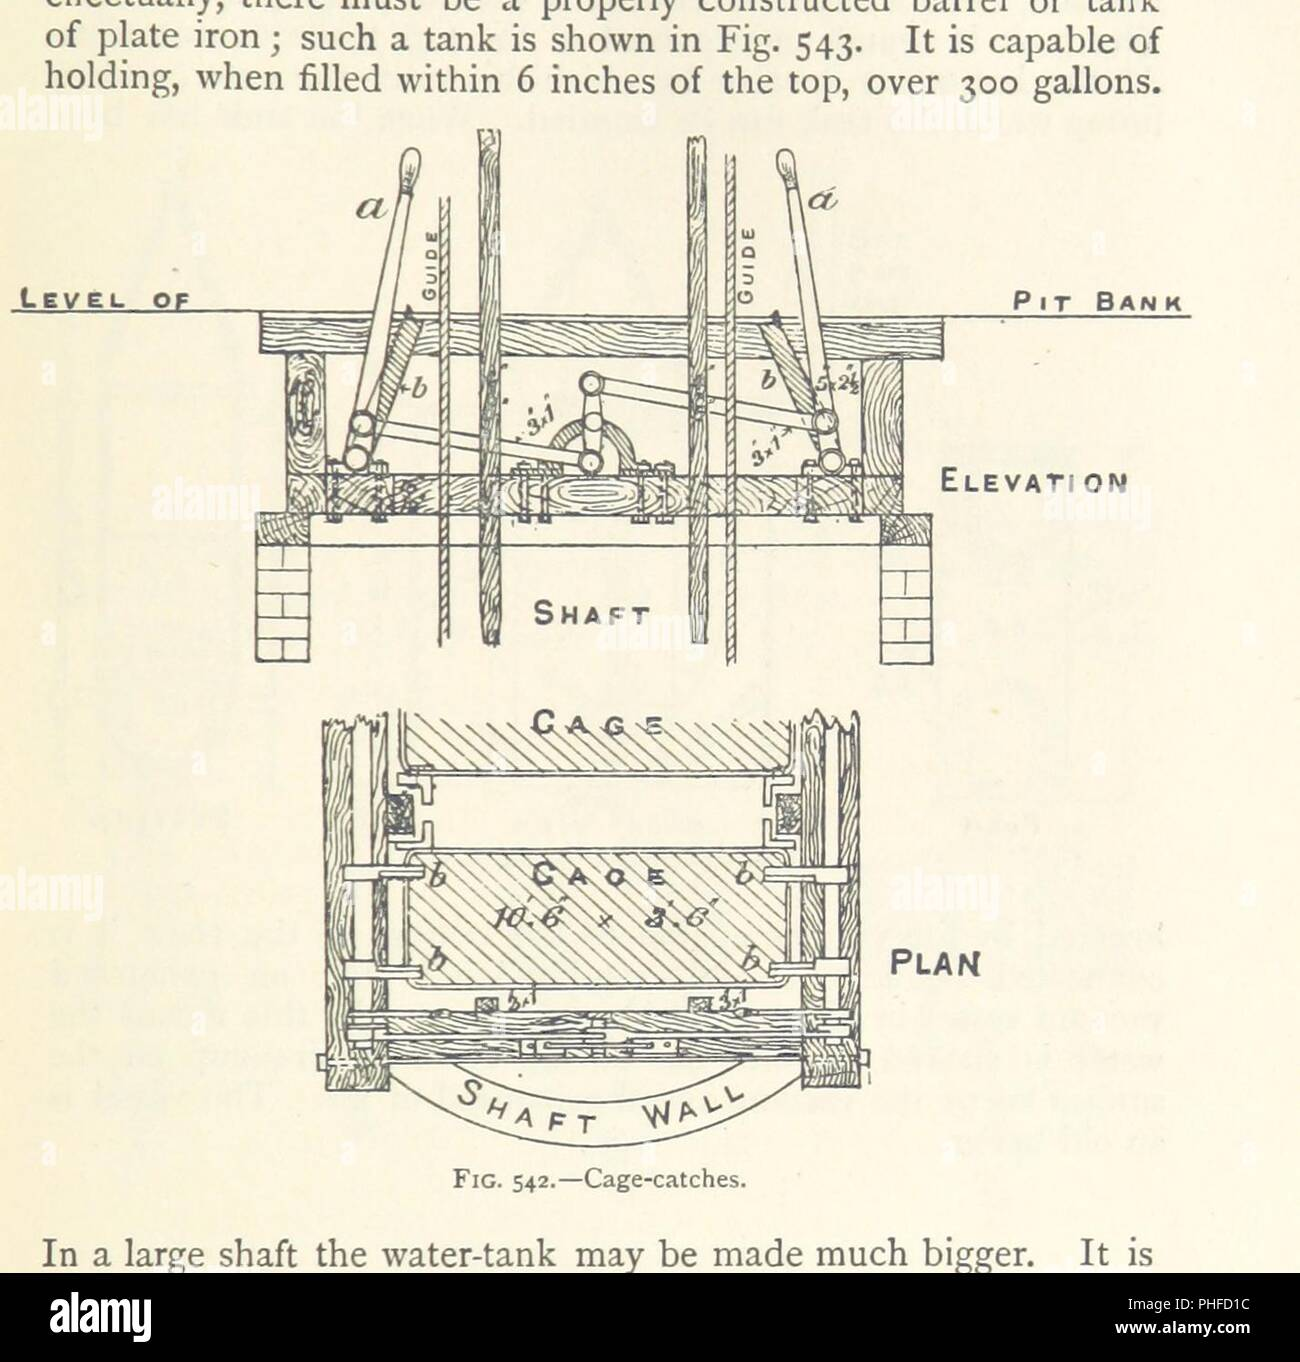 Elementary Treatise Stock Photos Images 543 Cat Engine Diagram Image From Page 459 Of Mining An On The Getting Minerals